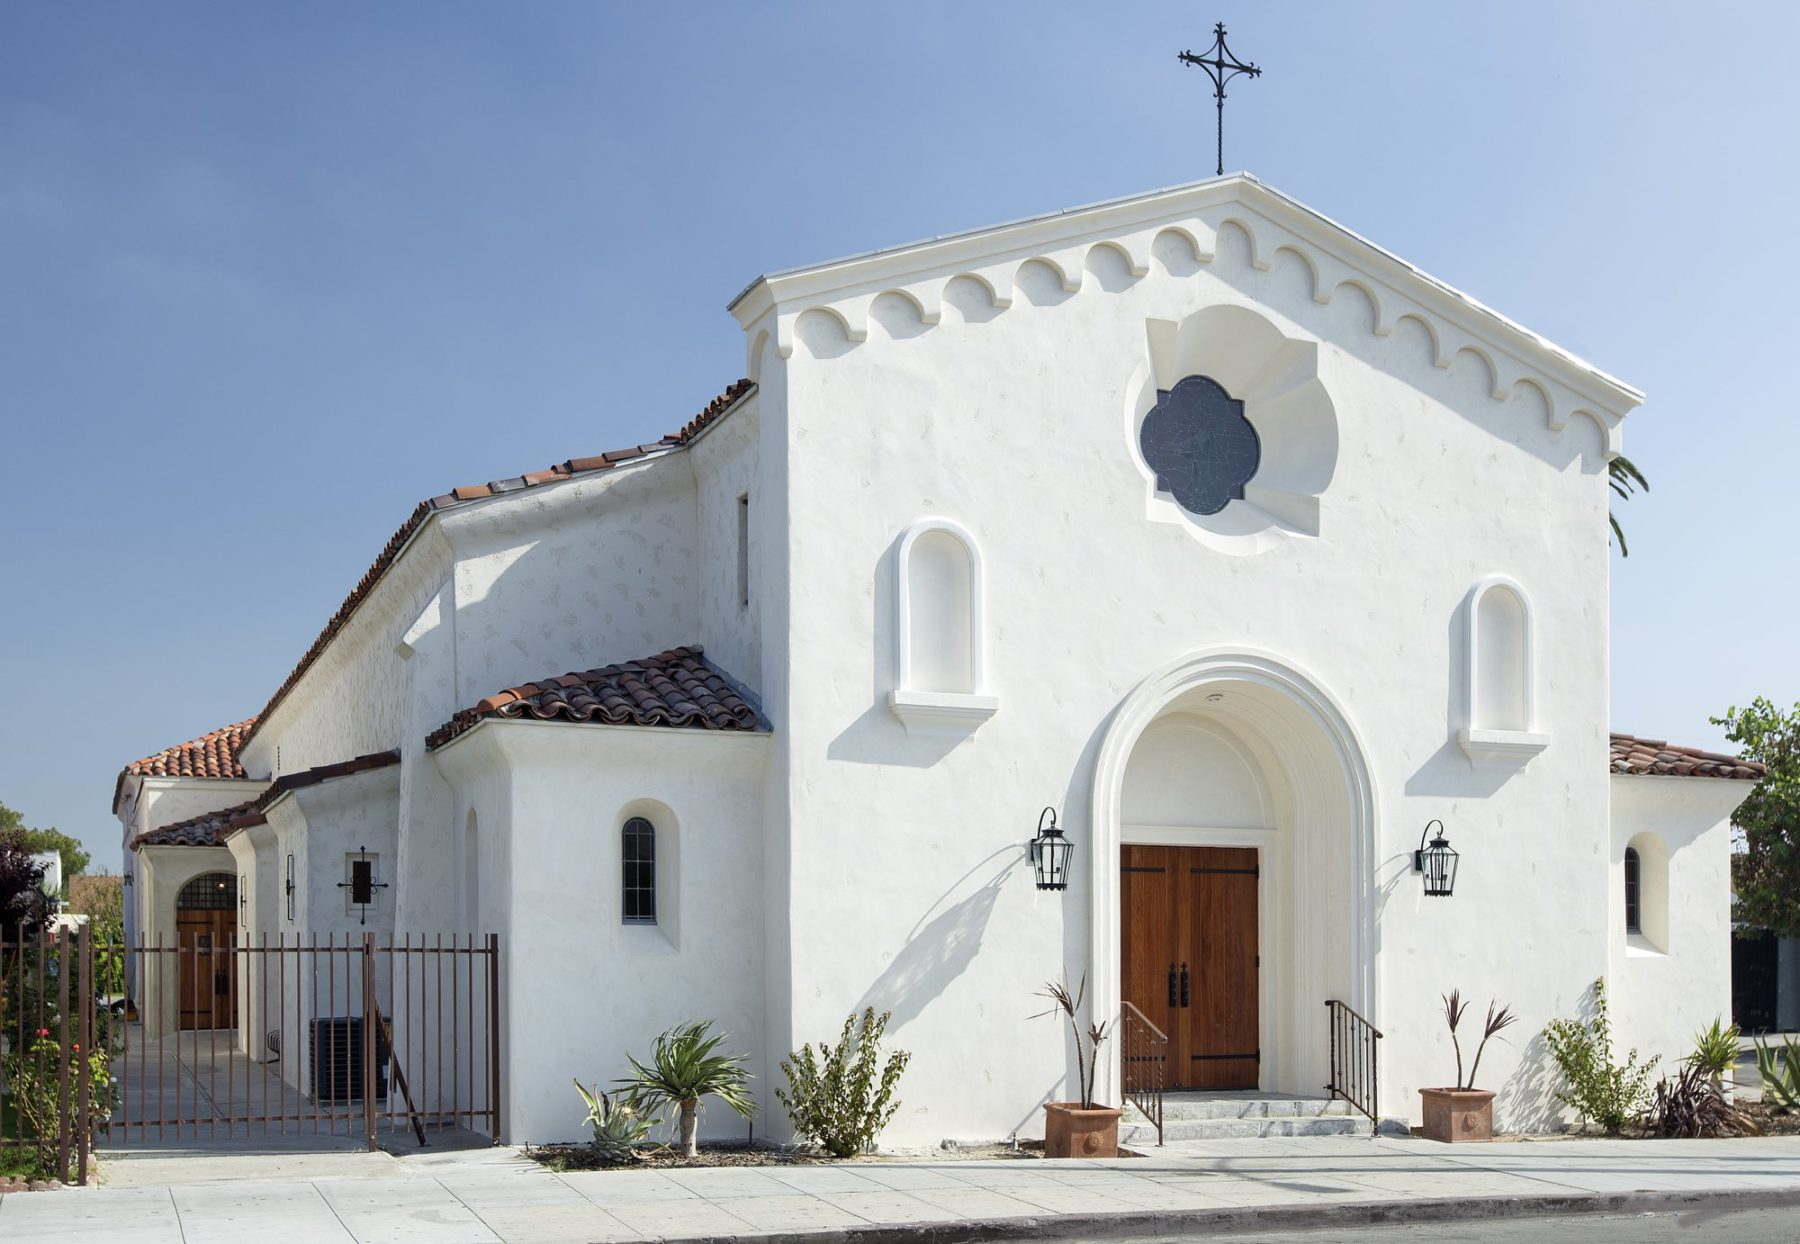 White adobe terra cotta tile mission architecture niches church façade with wood door wrought iron lights by Harrison Design